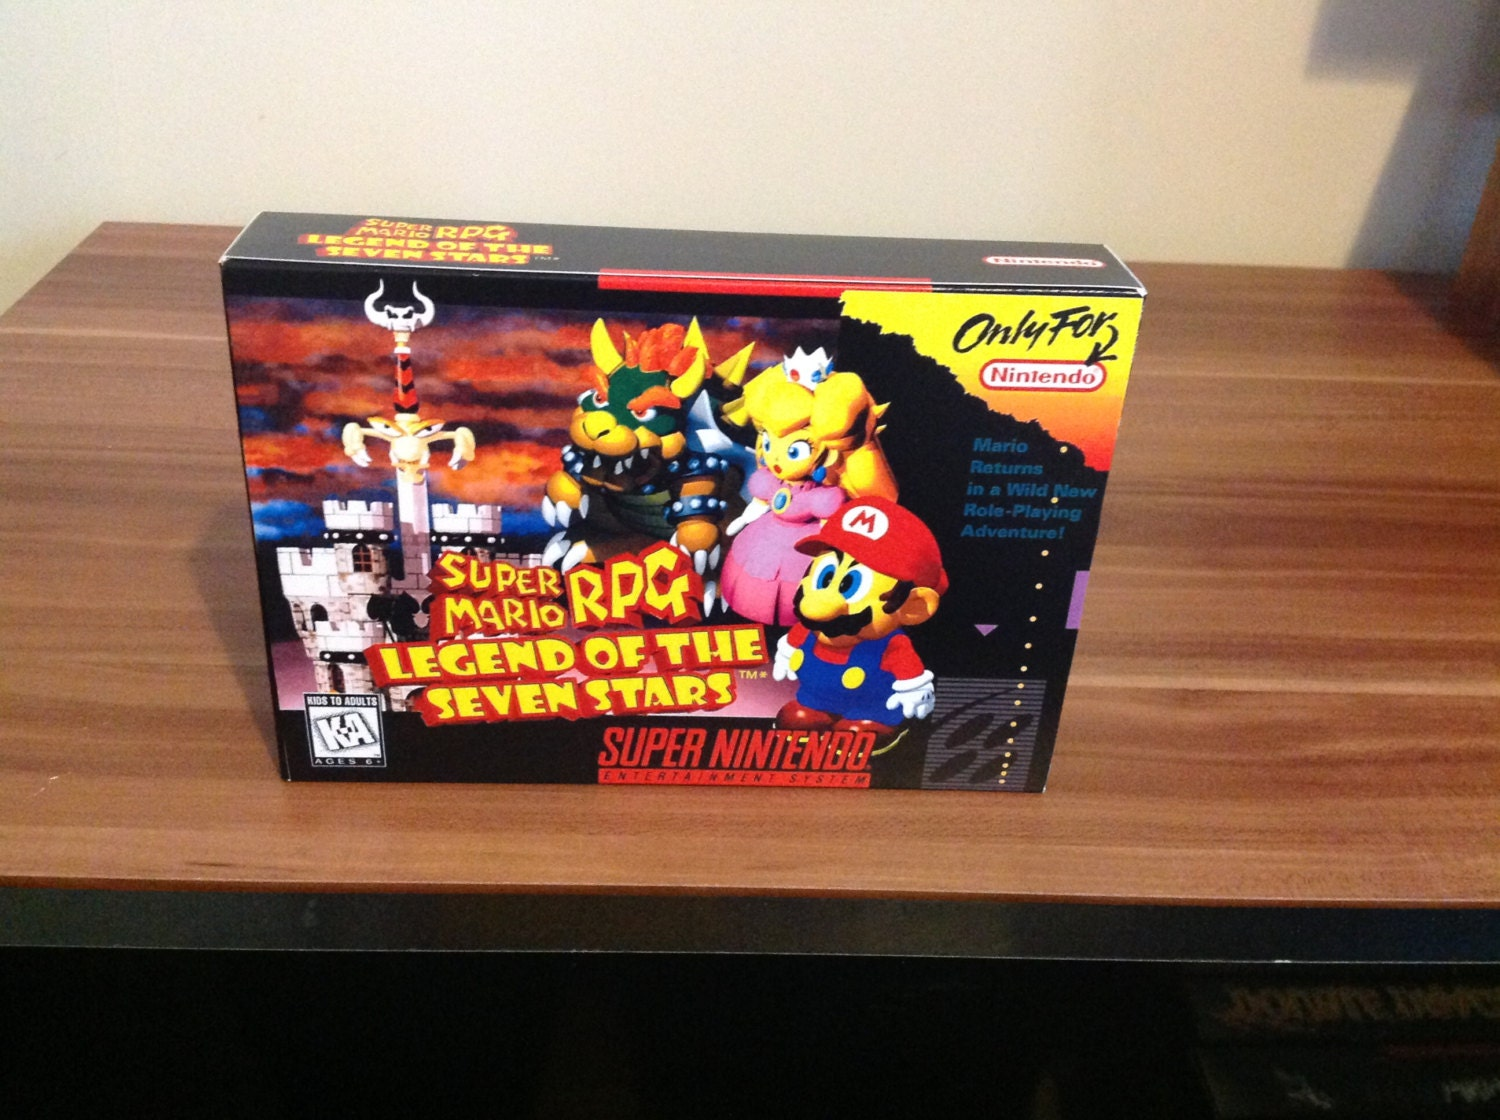 SNES Super Mario RPG  Legend of the Seven Stars   Repro Box and Insert No Game Included